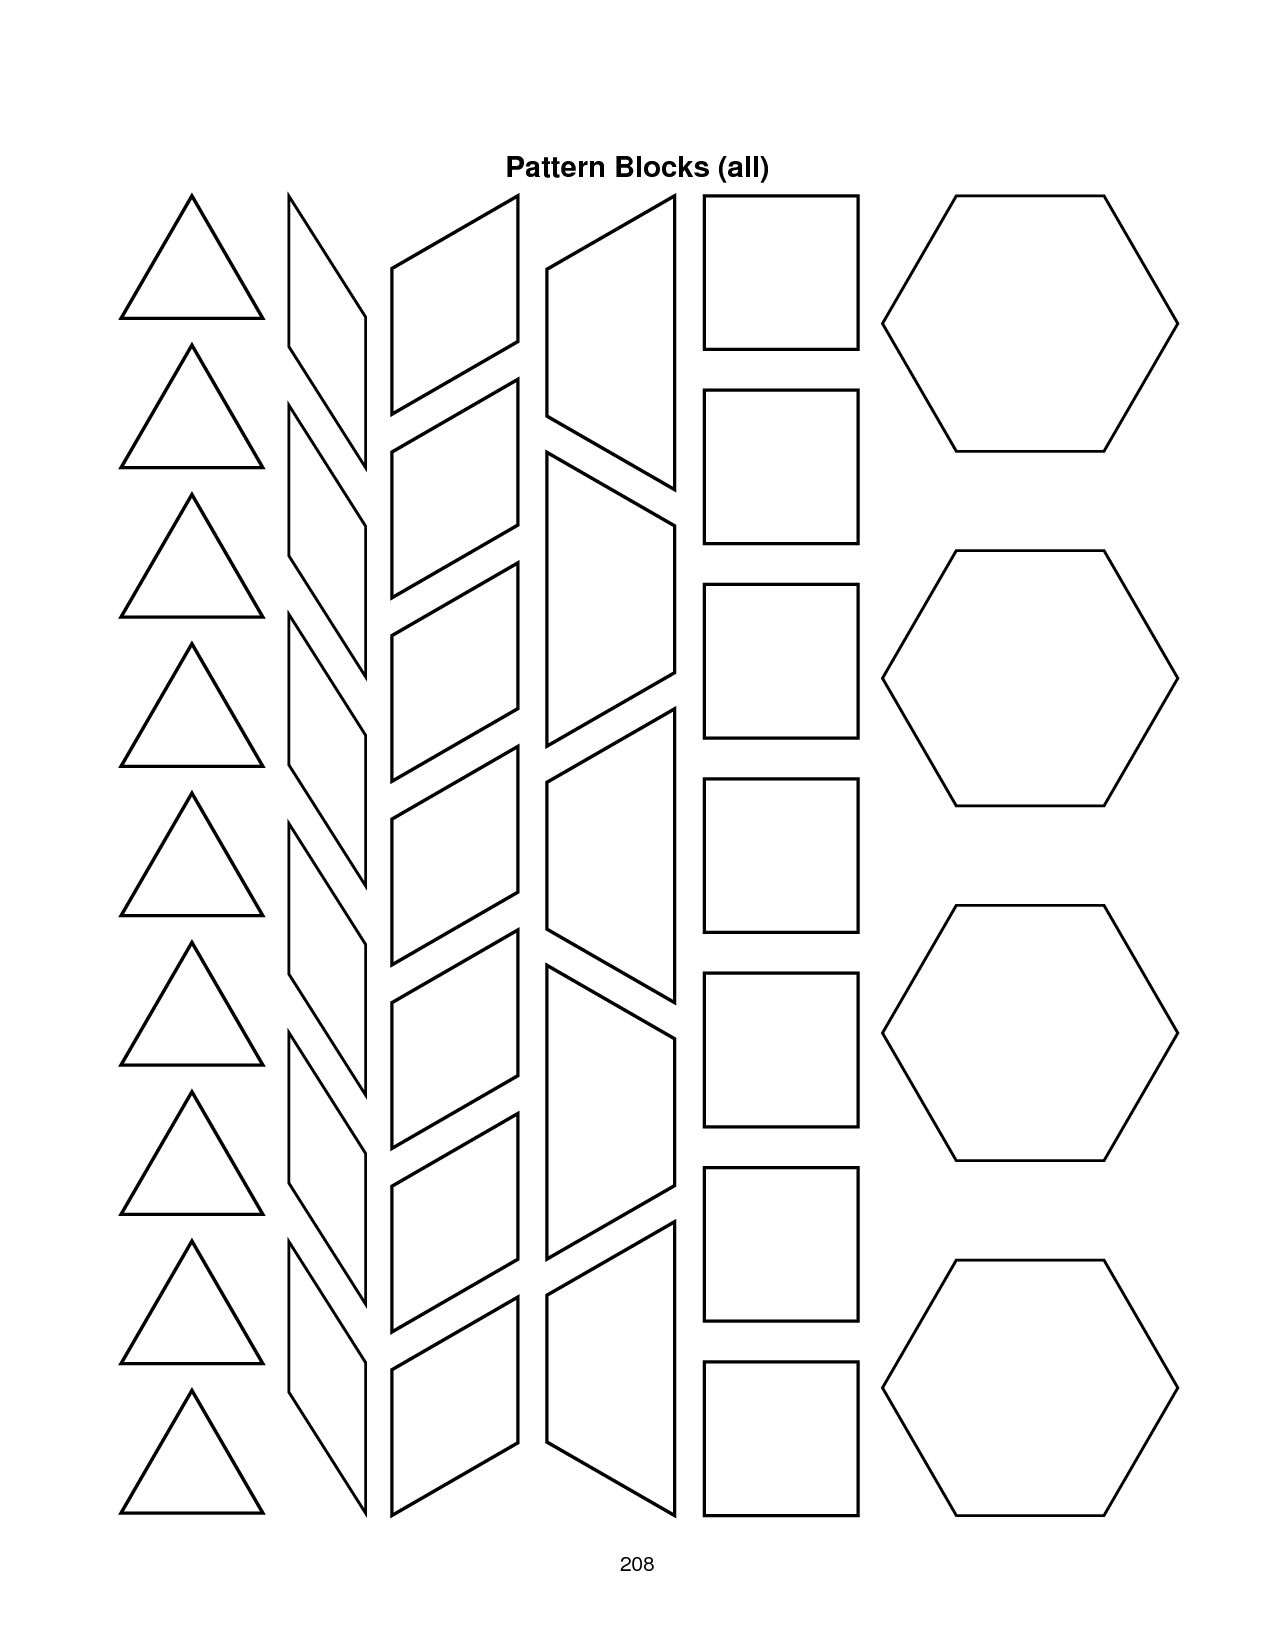 medium resolution of 28 Images Of Blank Alphabet Pattern Block Template   Migapps with Blank Pattern  Block Templates…   Pattern block templates